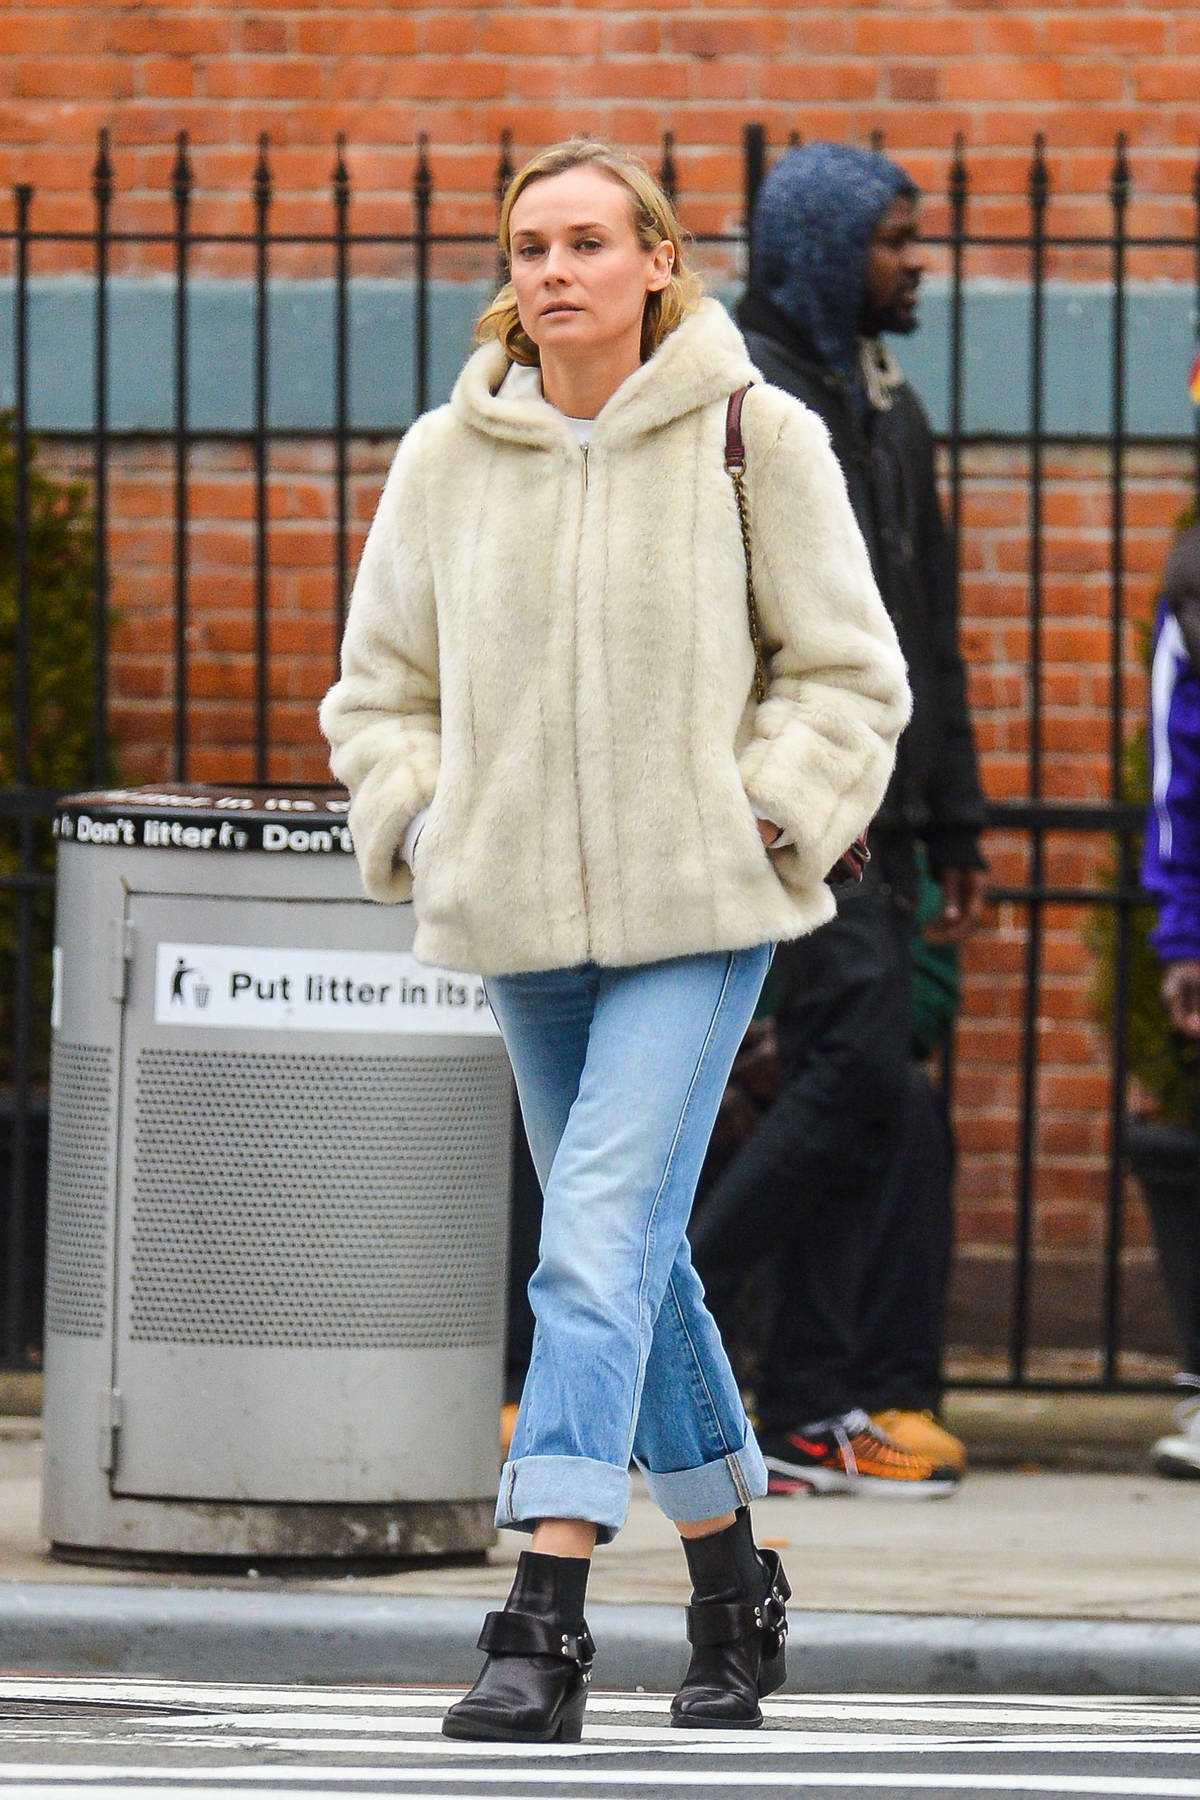 Diane Kruger out on a stroll wearing fur jacket in New York City